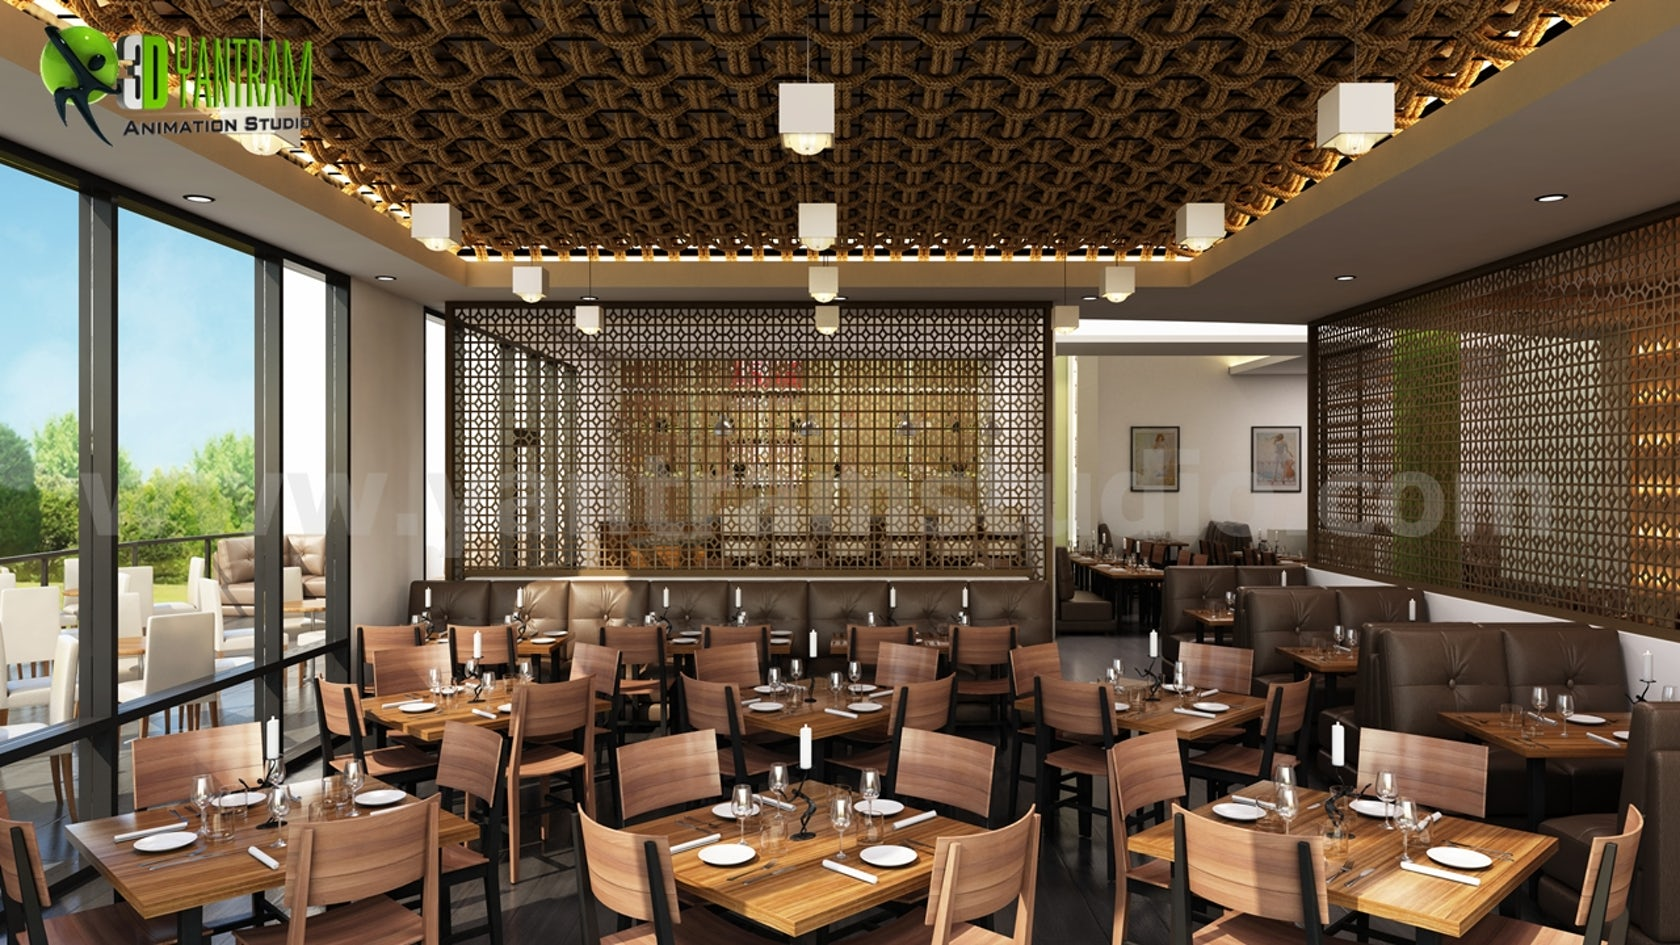 Restaurant Interior Rendering on Architizer